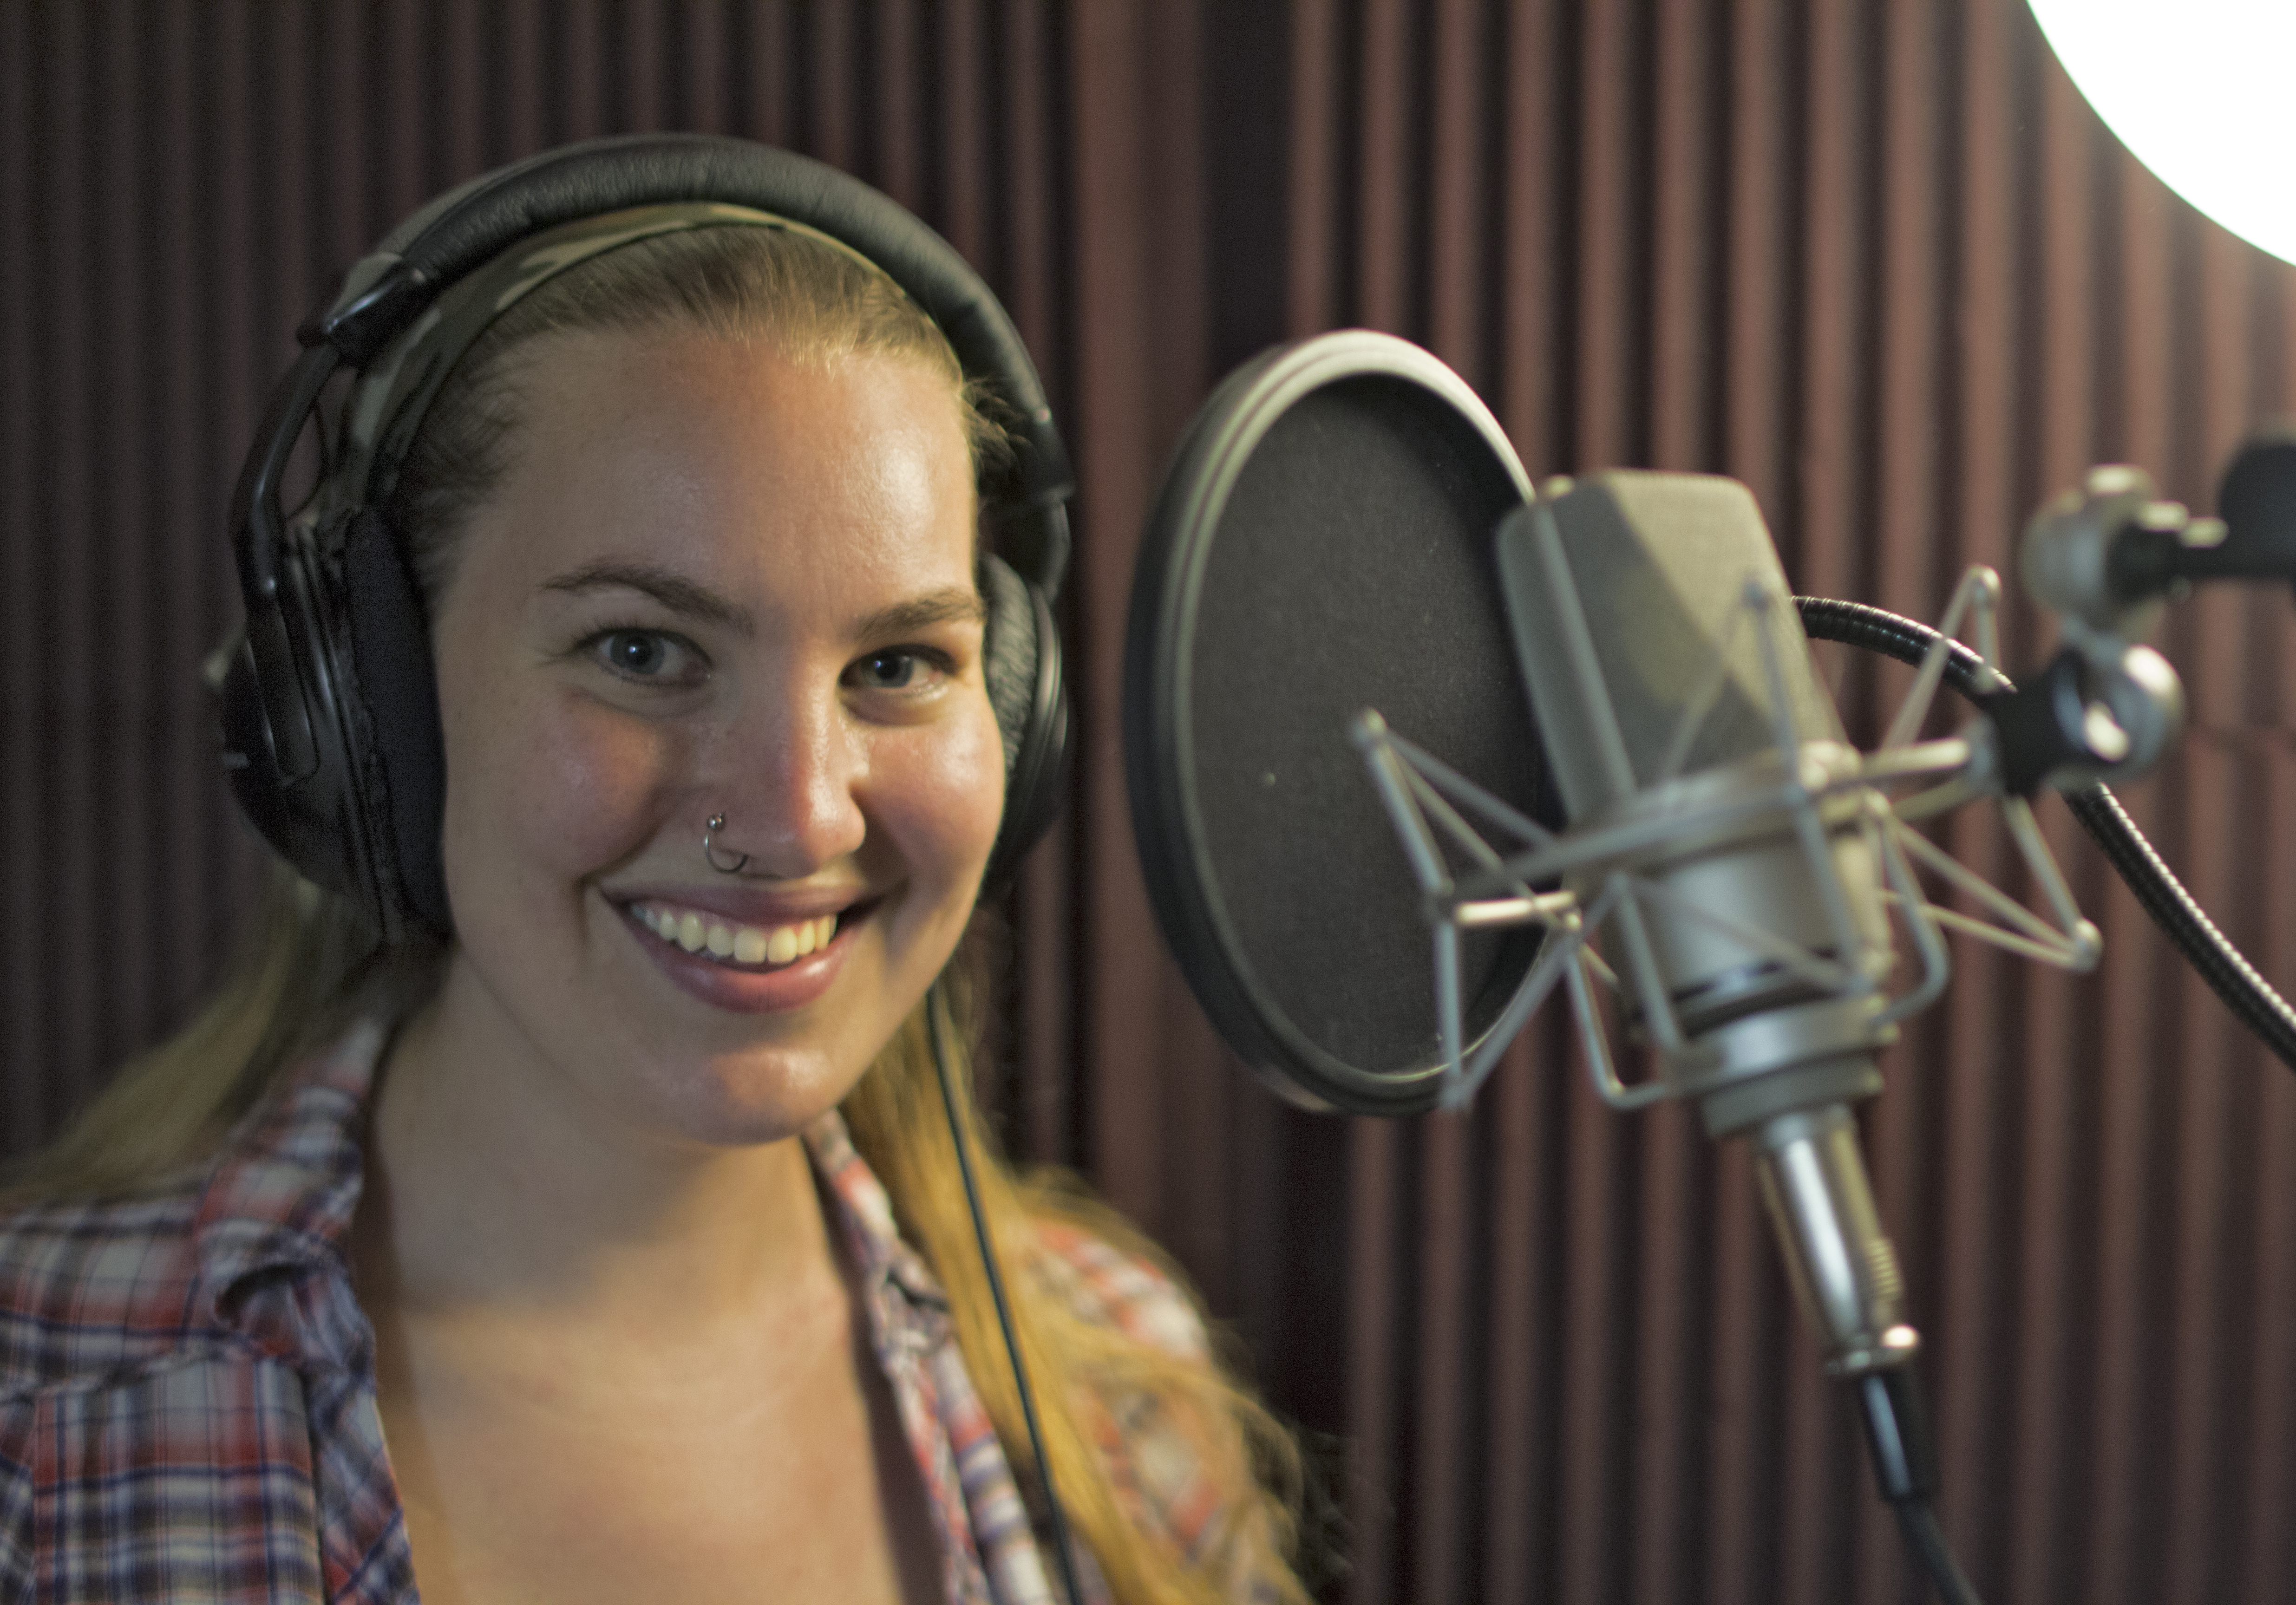 How to find voice actors on any budget (including free)